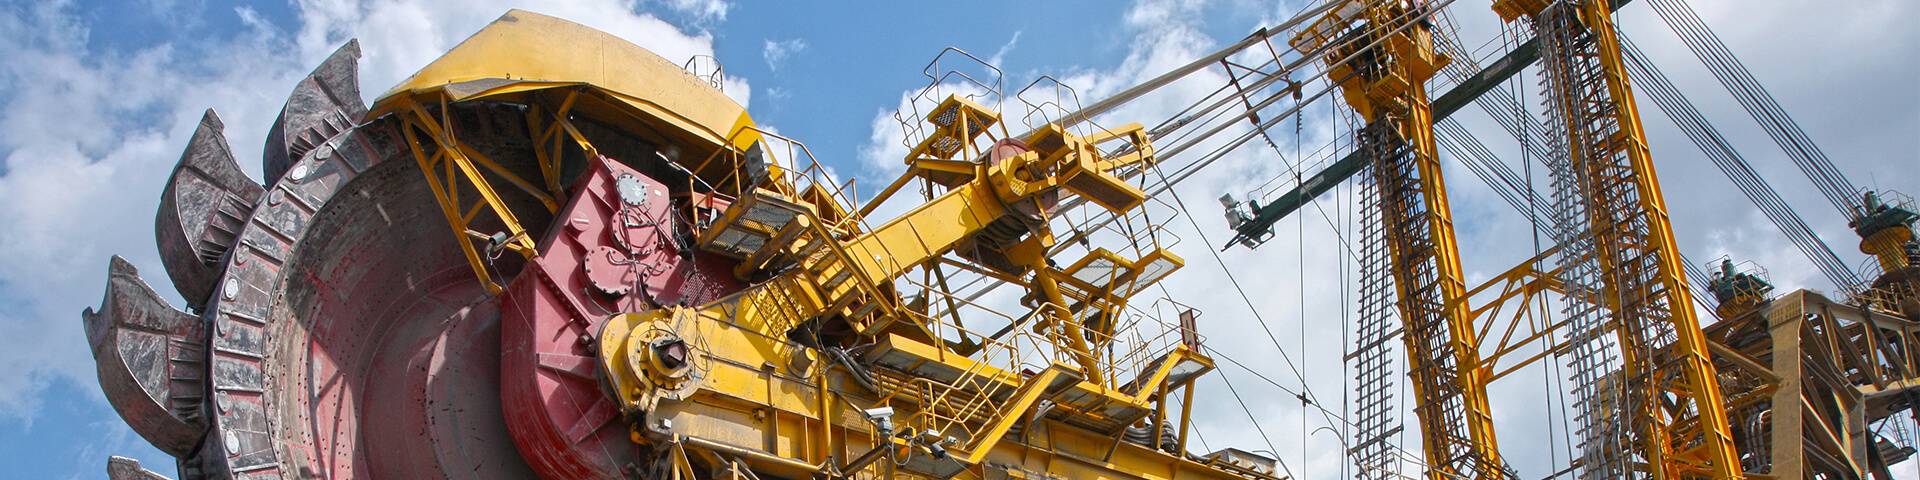 Heavy machinery for mining